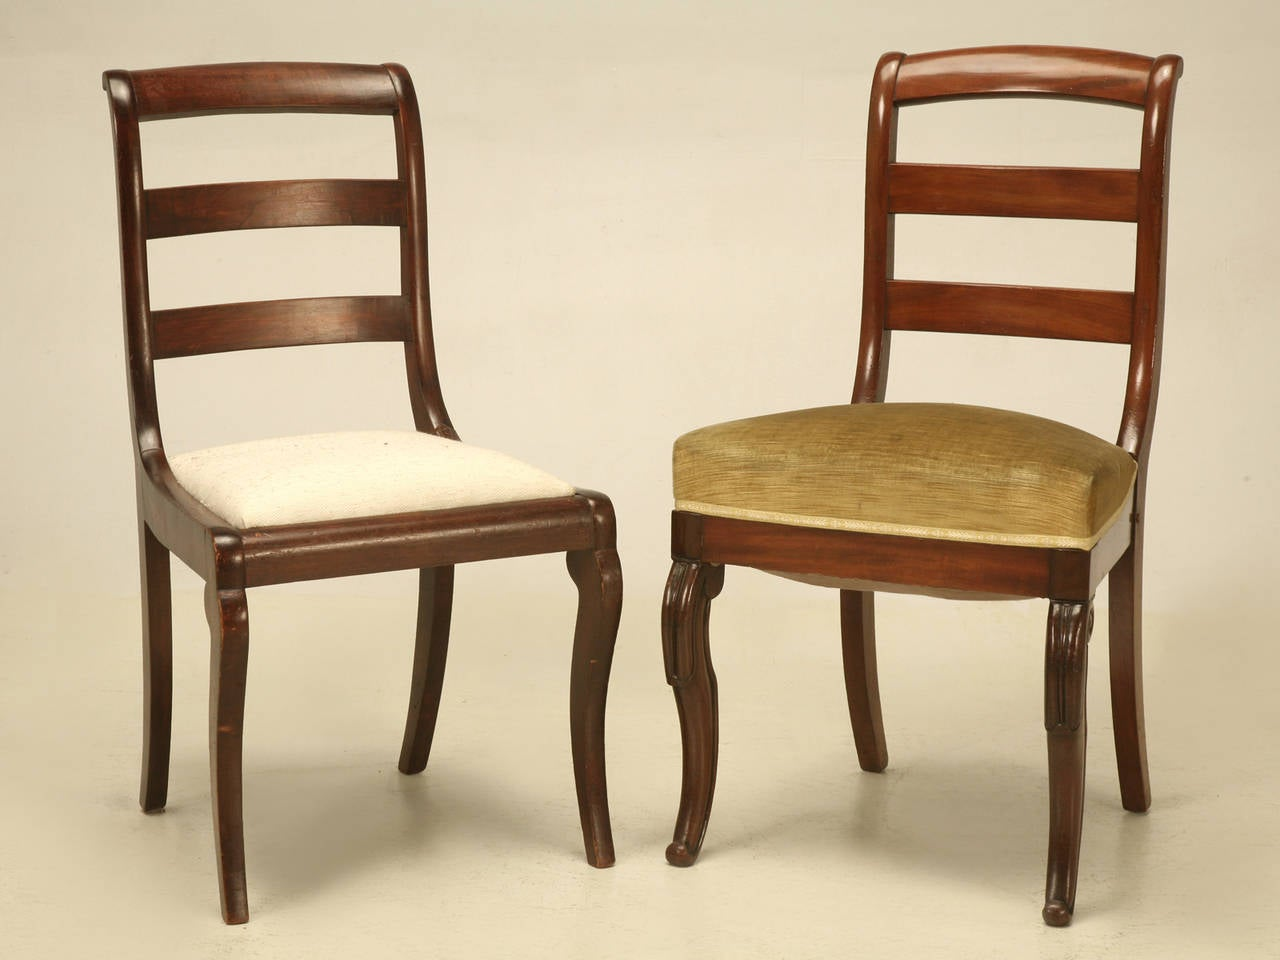 antique ladder back chairs value wood rocking chair set of six french vintage side at 1stdibs